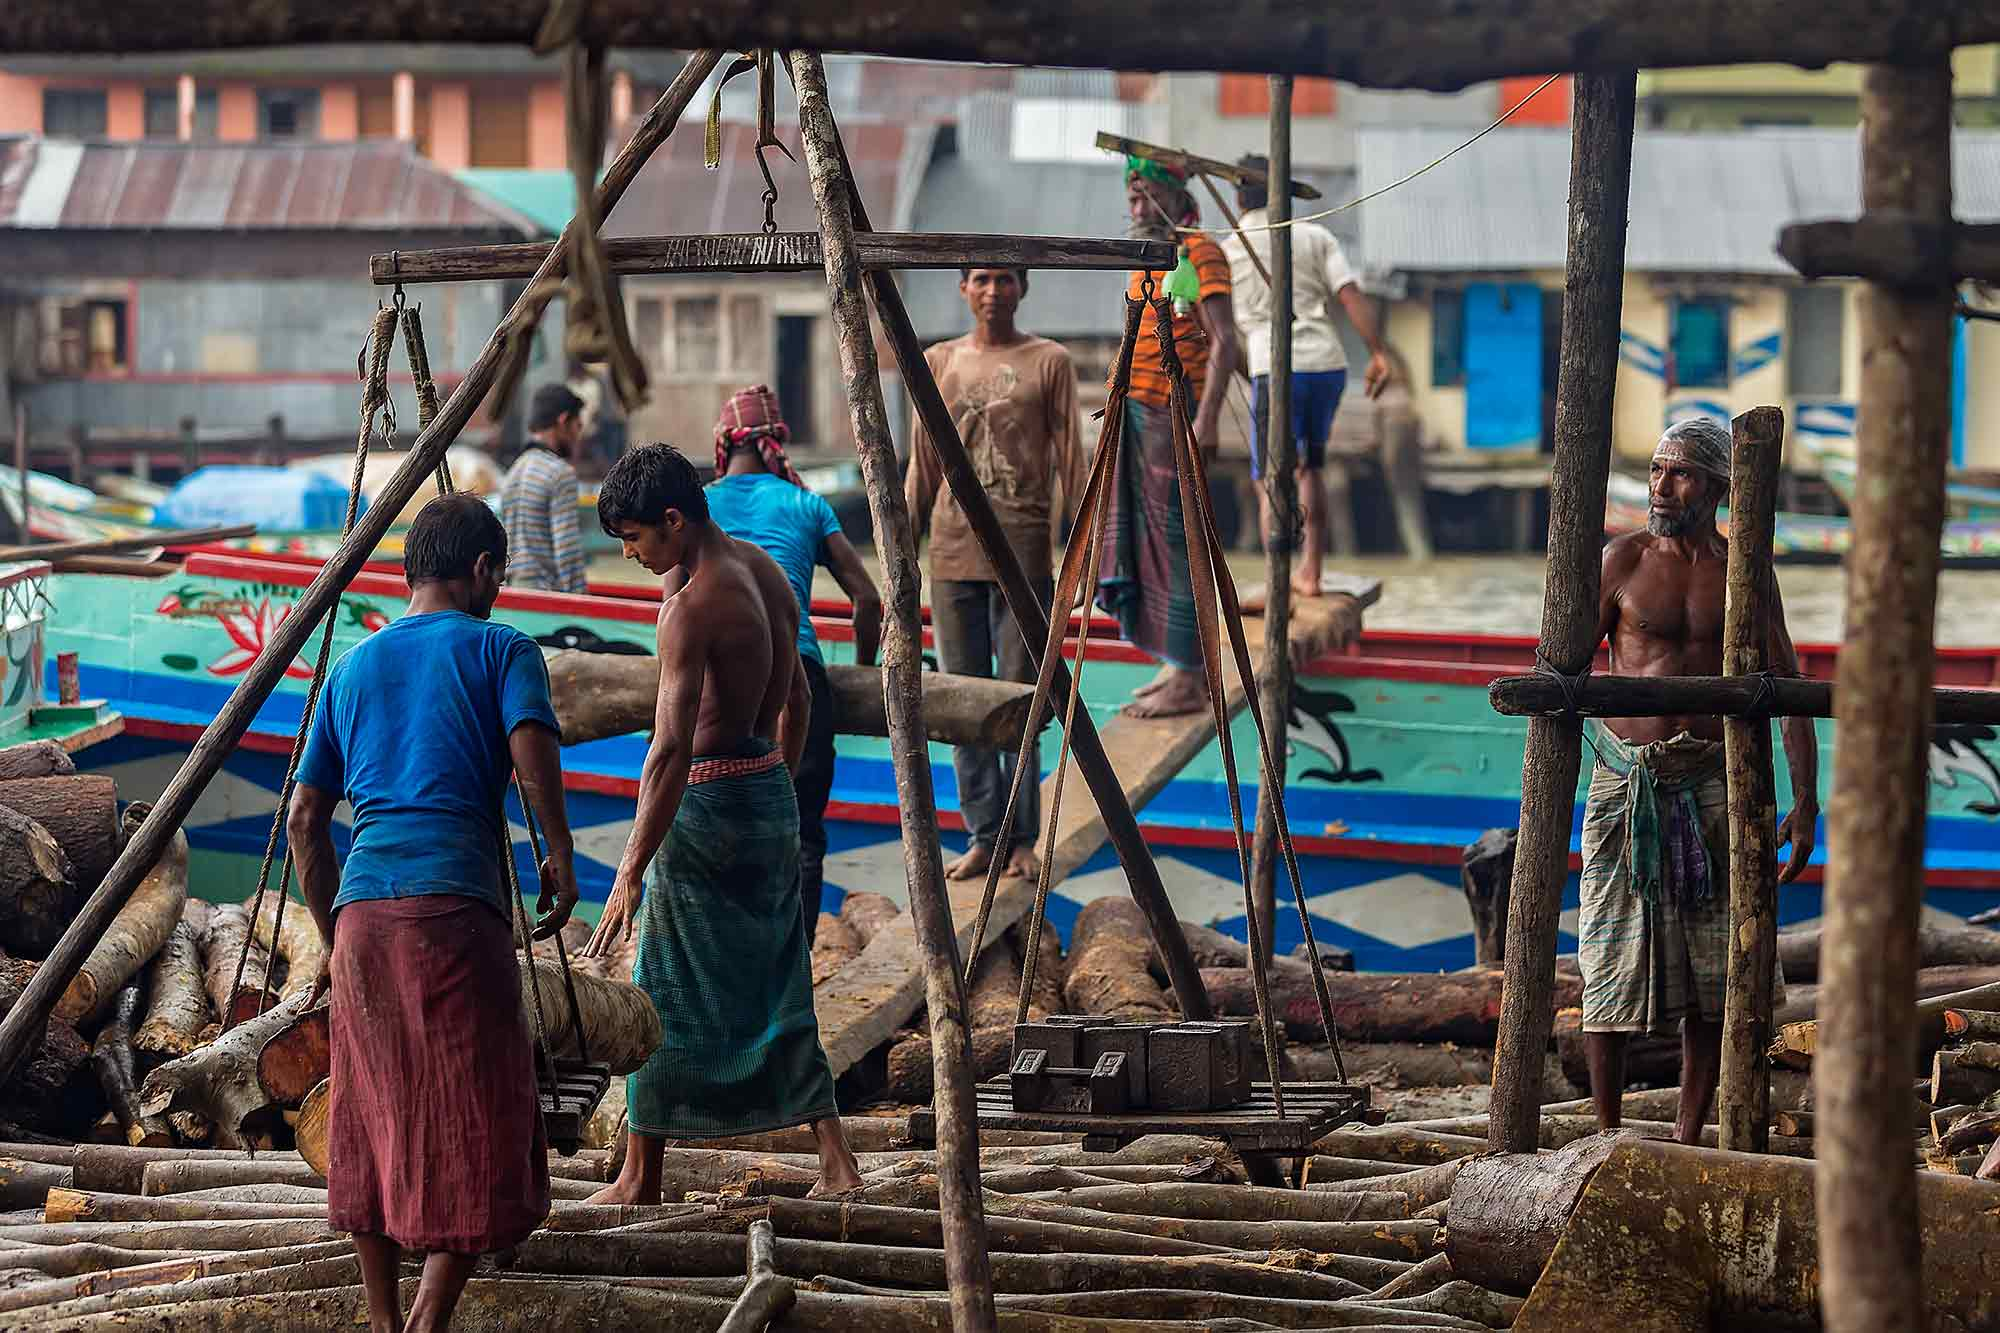 Men weighing the wood trunks in Swarupkati, Bangladesh. © Ulli Maier & Nisa Maier